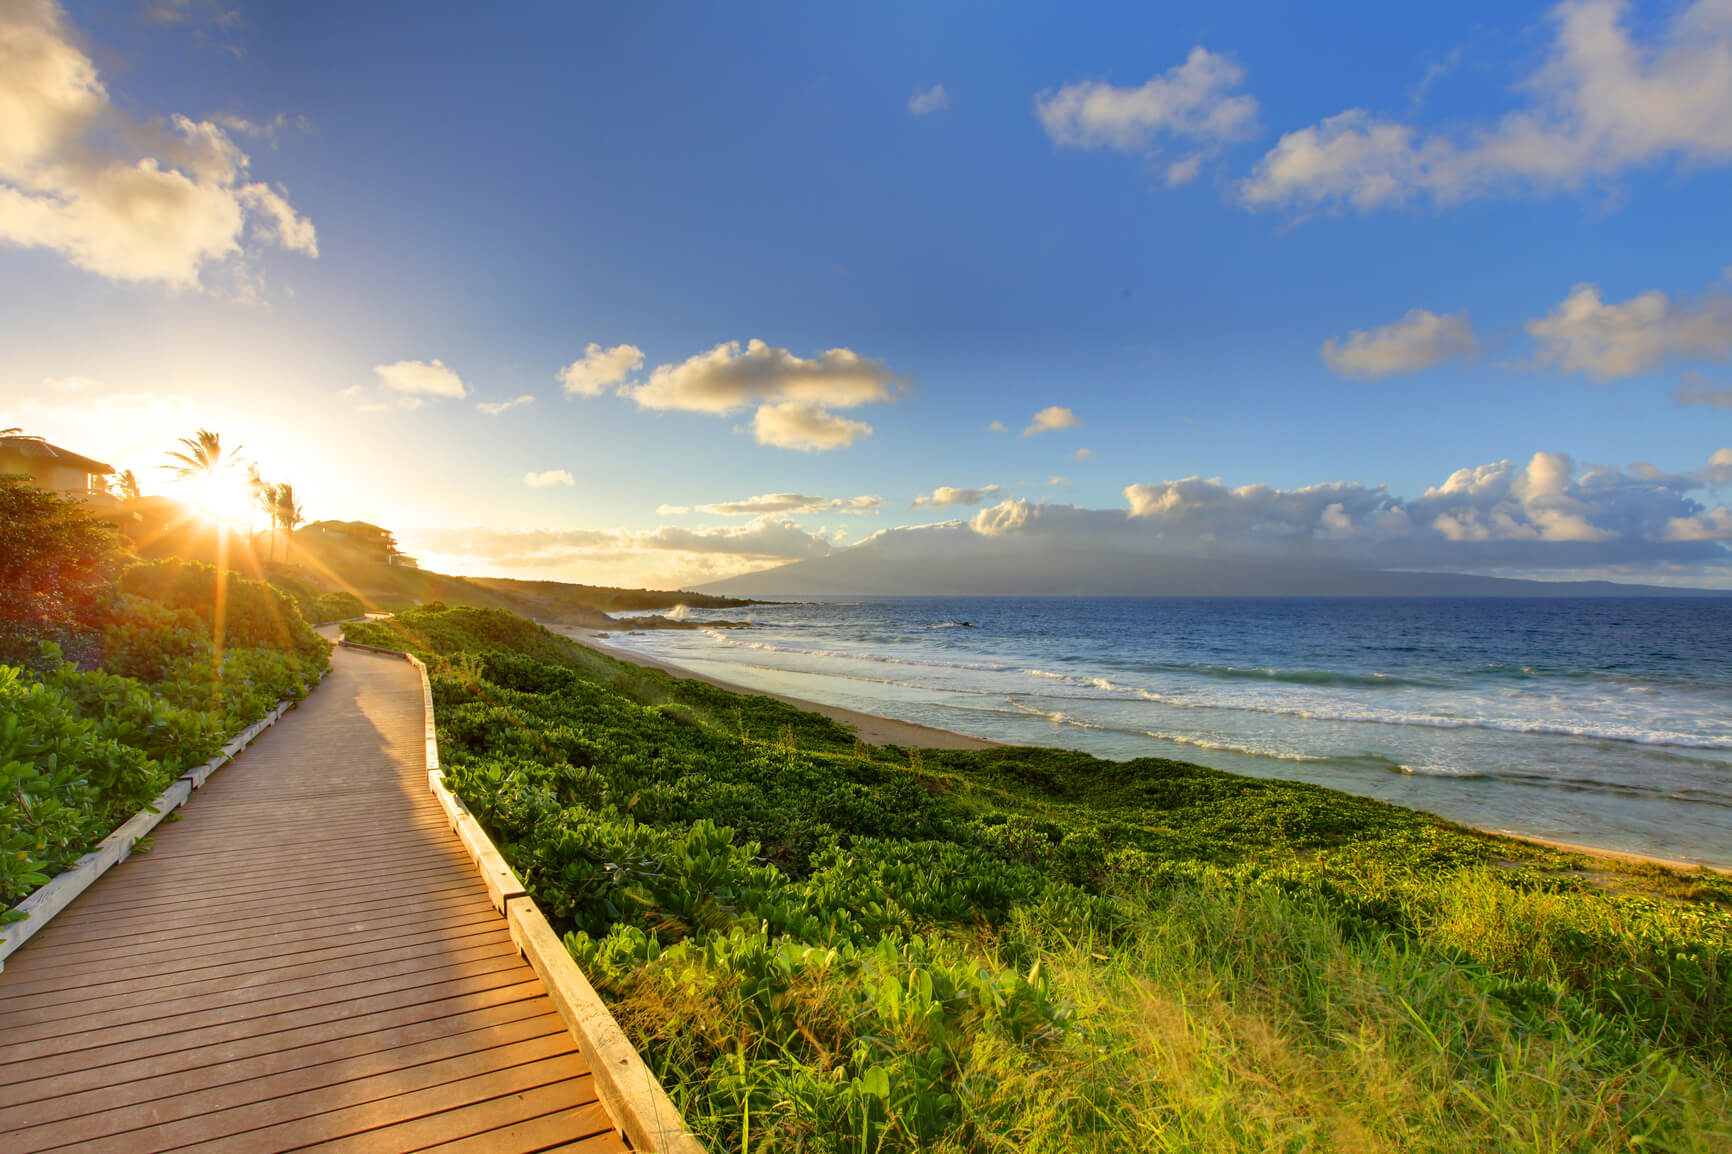 Philadelphia to Kahului, Hawaii (& vice versa) for only $393 roundtrip (Oct-Nov dates)